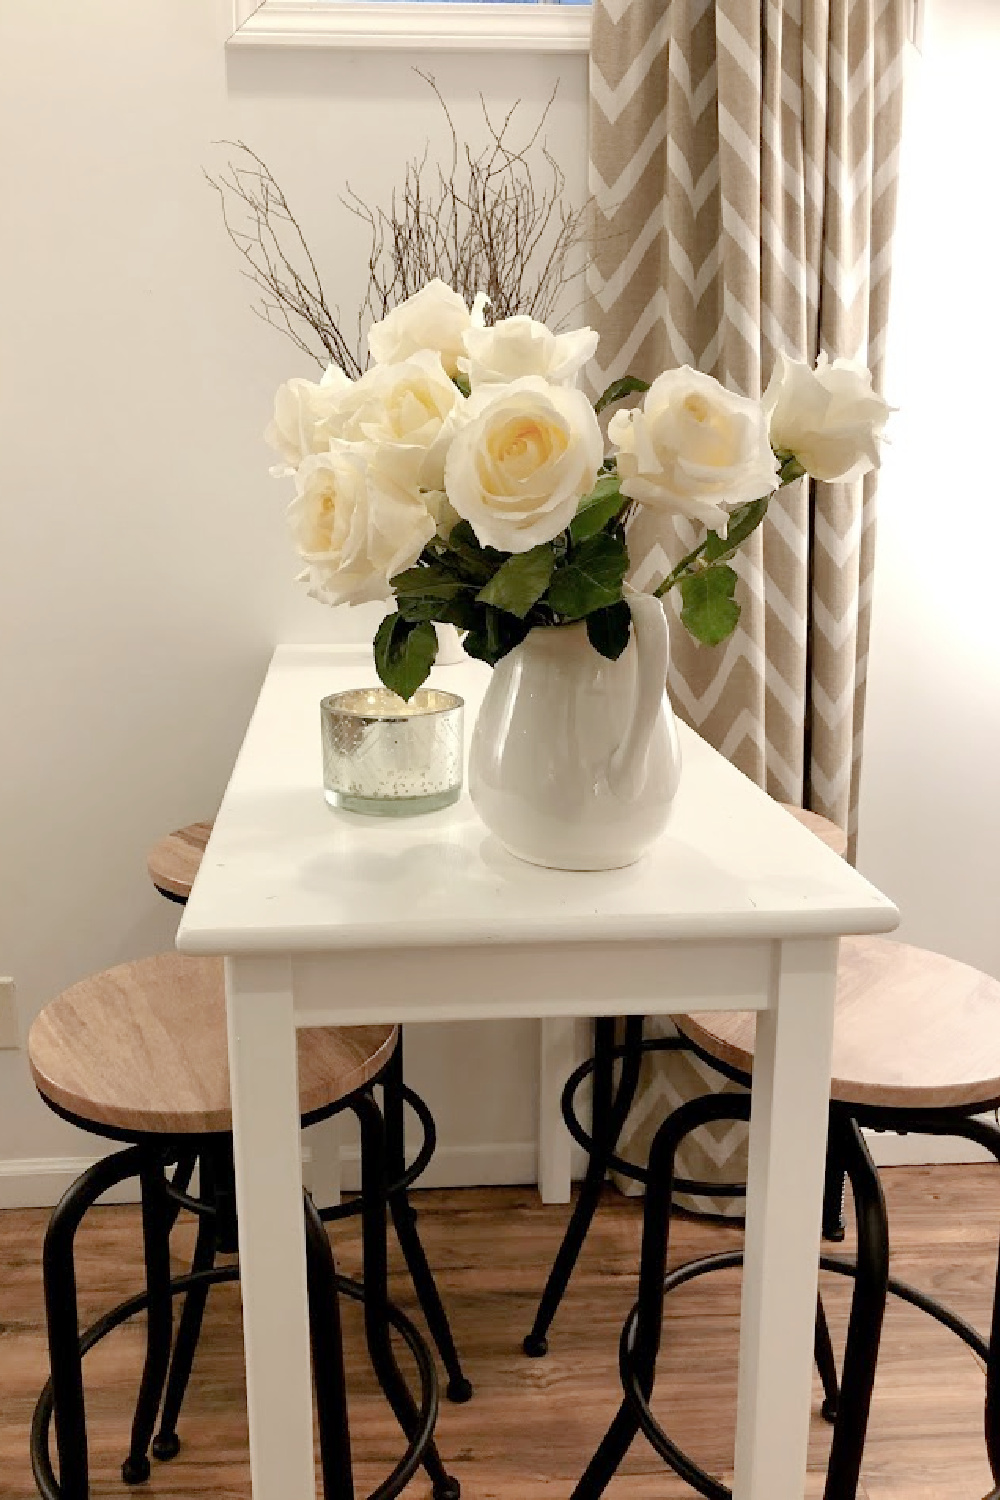 White roses in ironstone pitcher on pub table with industrial stools - Hello Lovely.